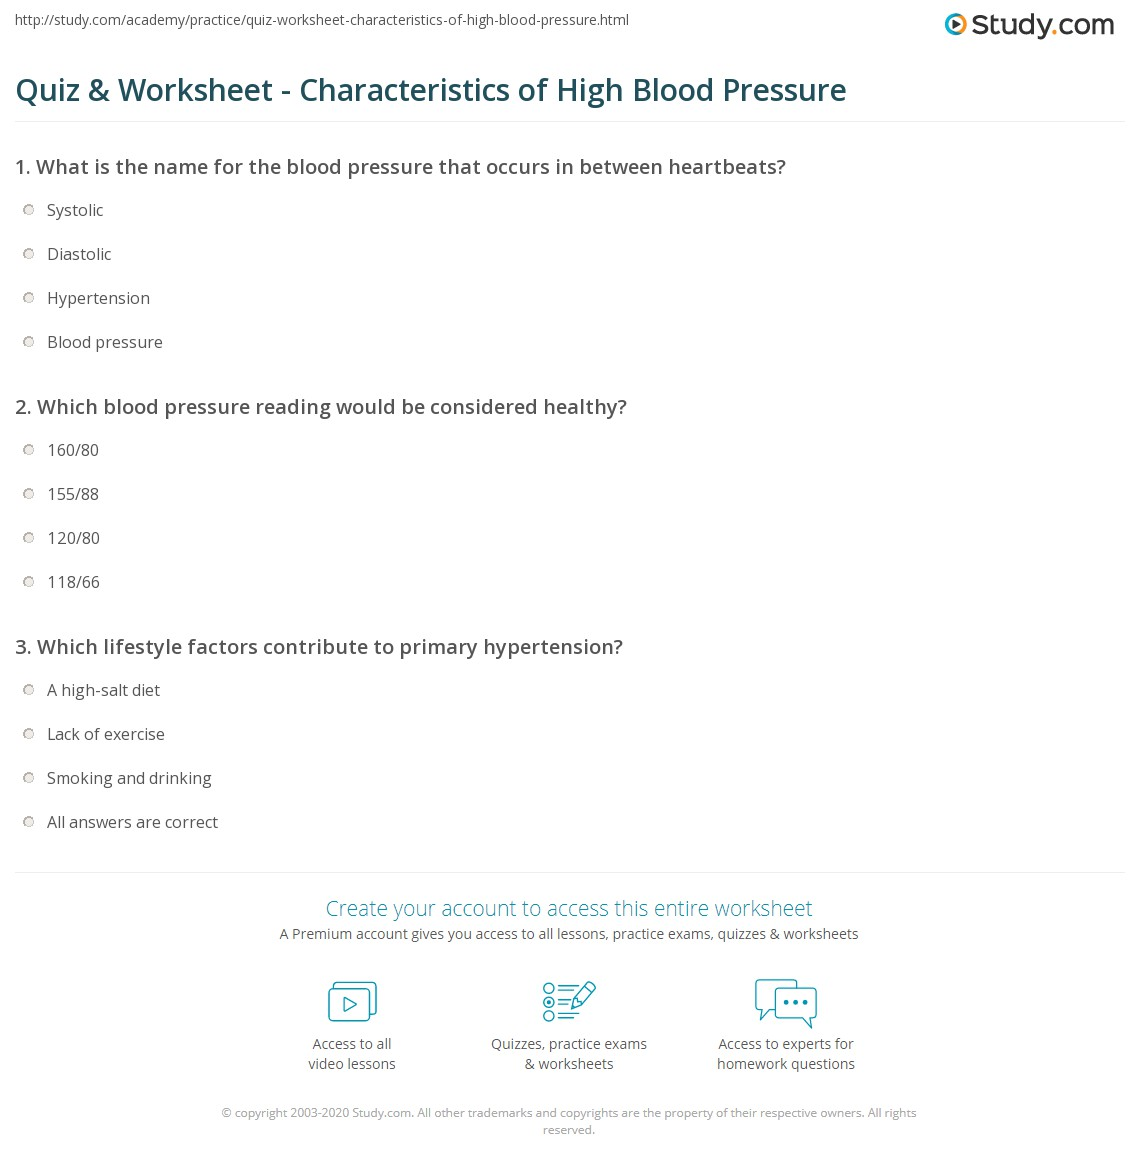 Stress Test Blood Pressure Readings: Characteristics Of High Blood Pressure